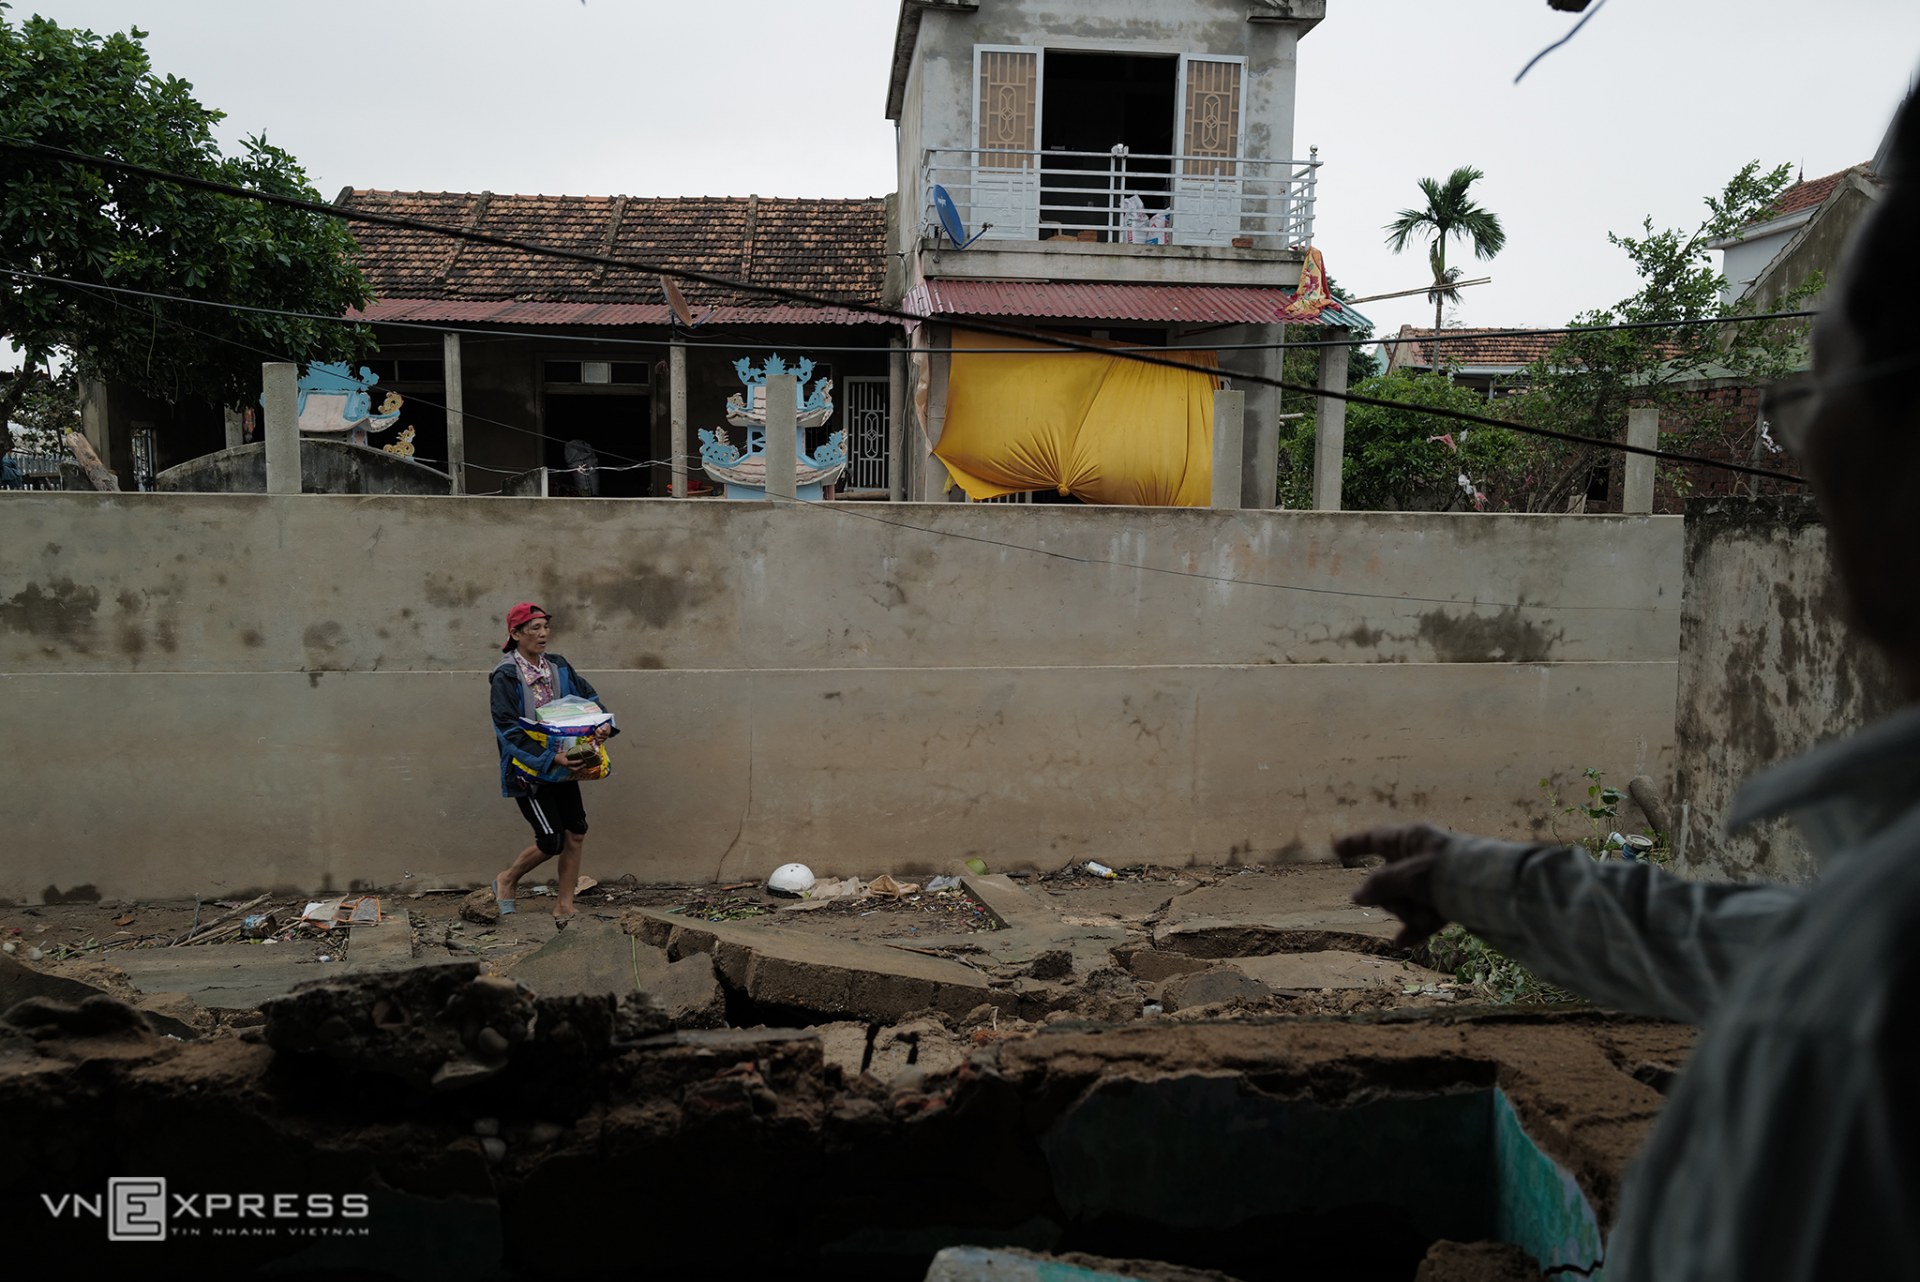 In photos: Quang Binh left ravaged after record flooding